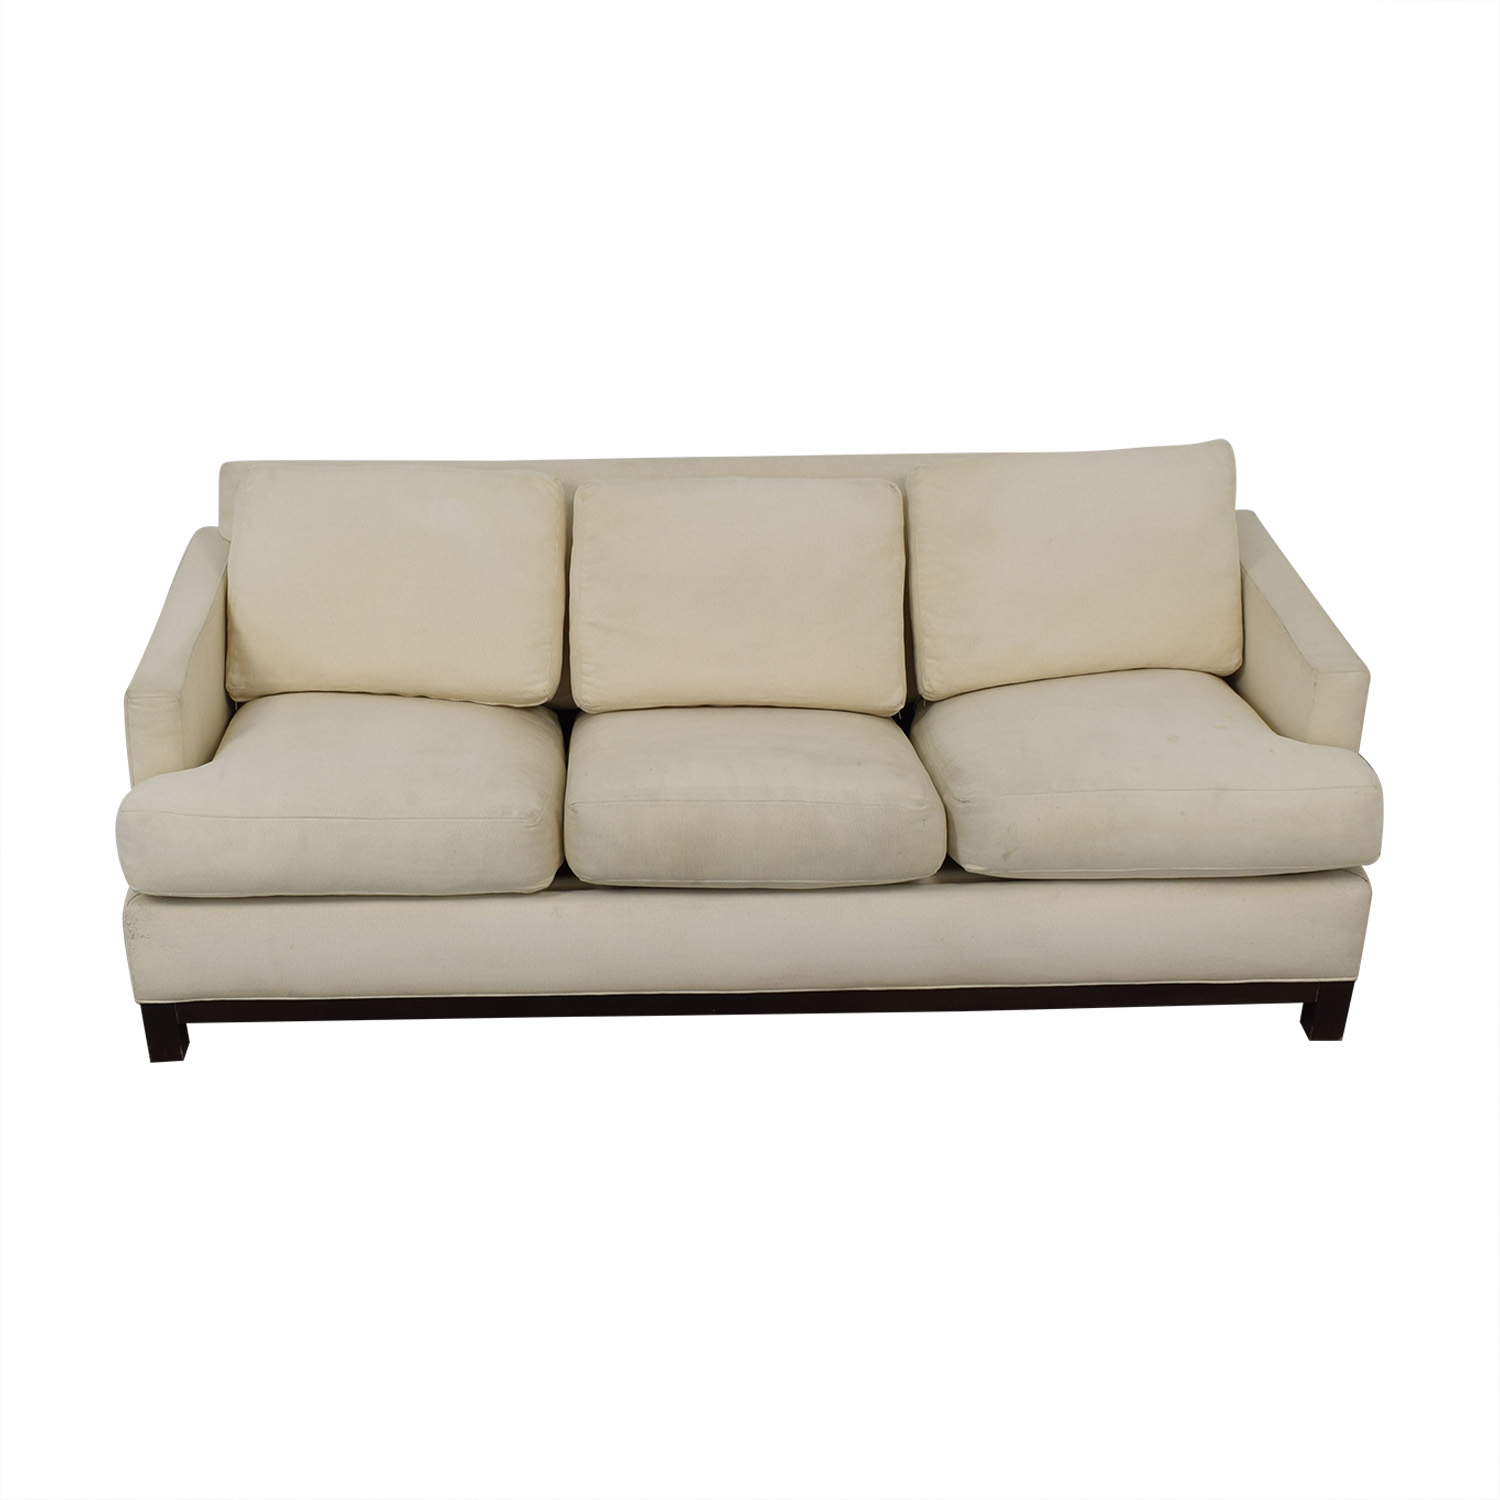 Rowe Furniture Rowe Furniture Queen Sleeper Sofa dimensions